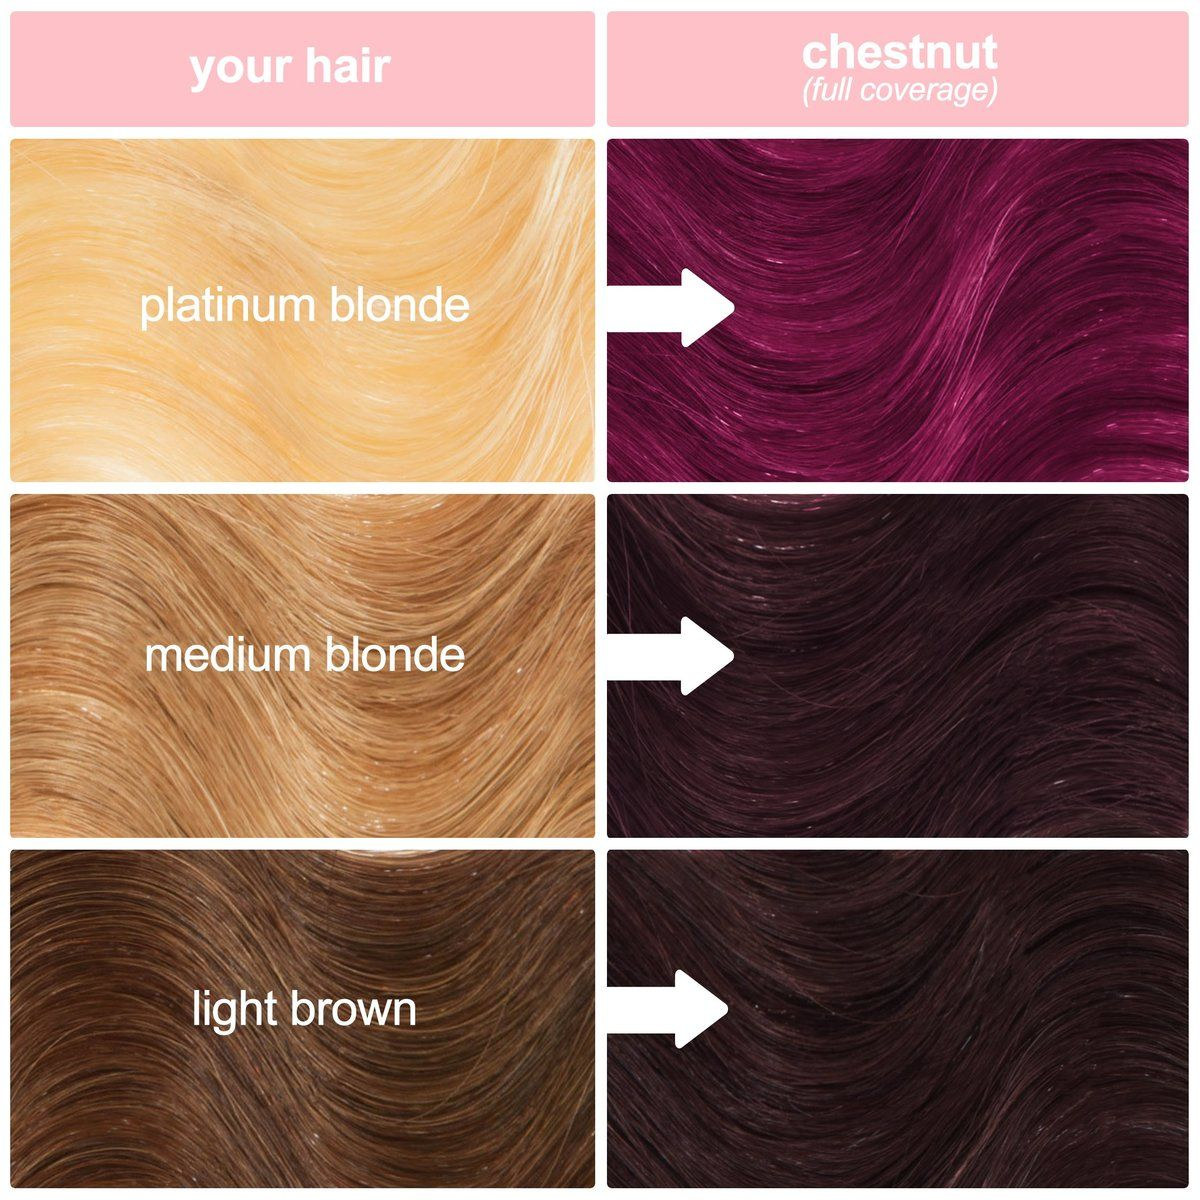 Chestnut Hair Color In 2020 Unicorn Hair Dye Semi Permanent